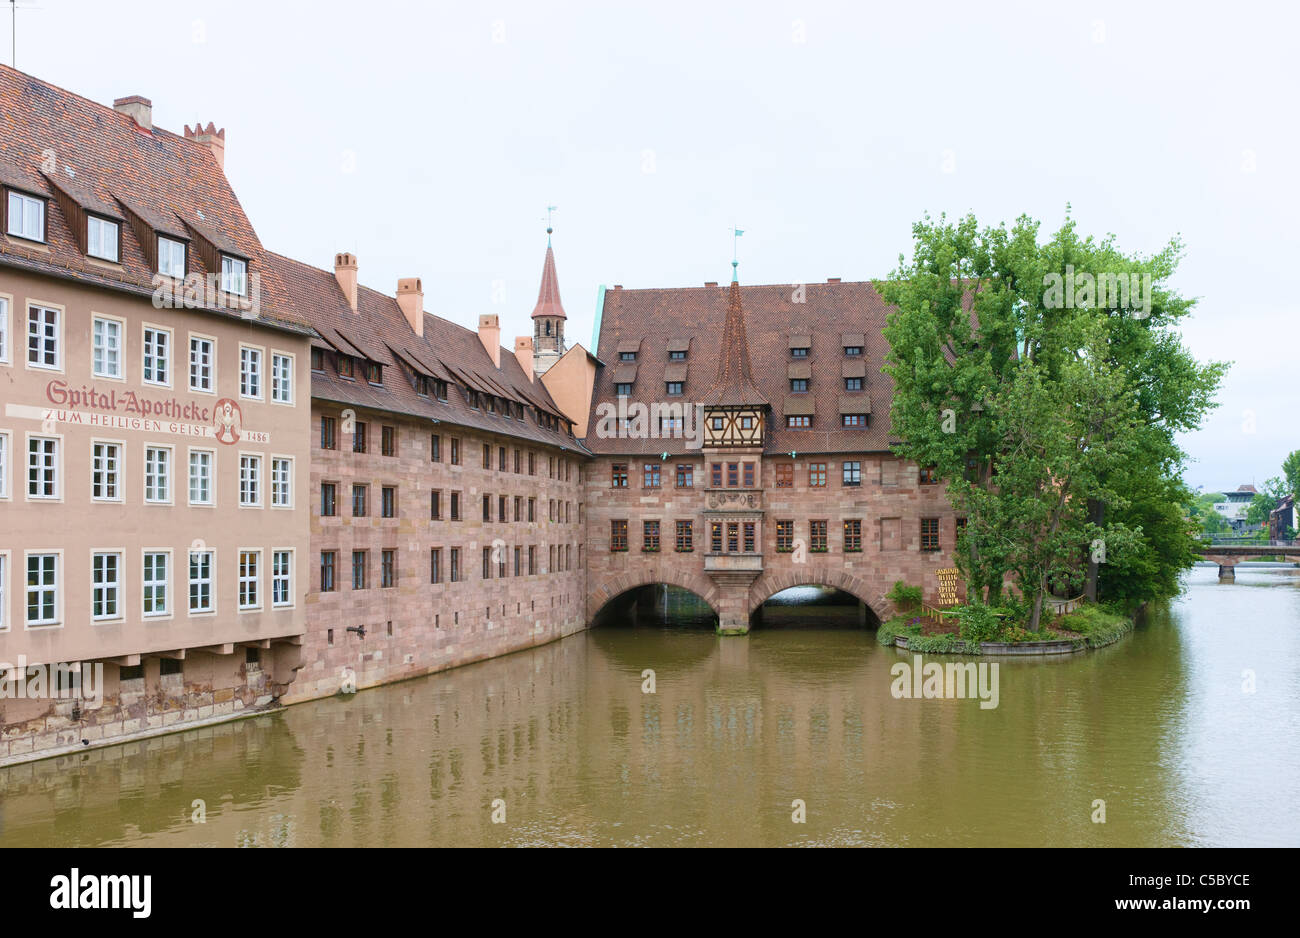 Nurnberg Heilig Geist Spital (Hospital of the Holy Ghost) over Pegnitz river - Stock Image